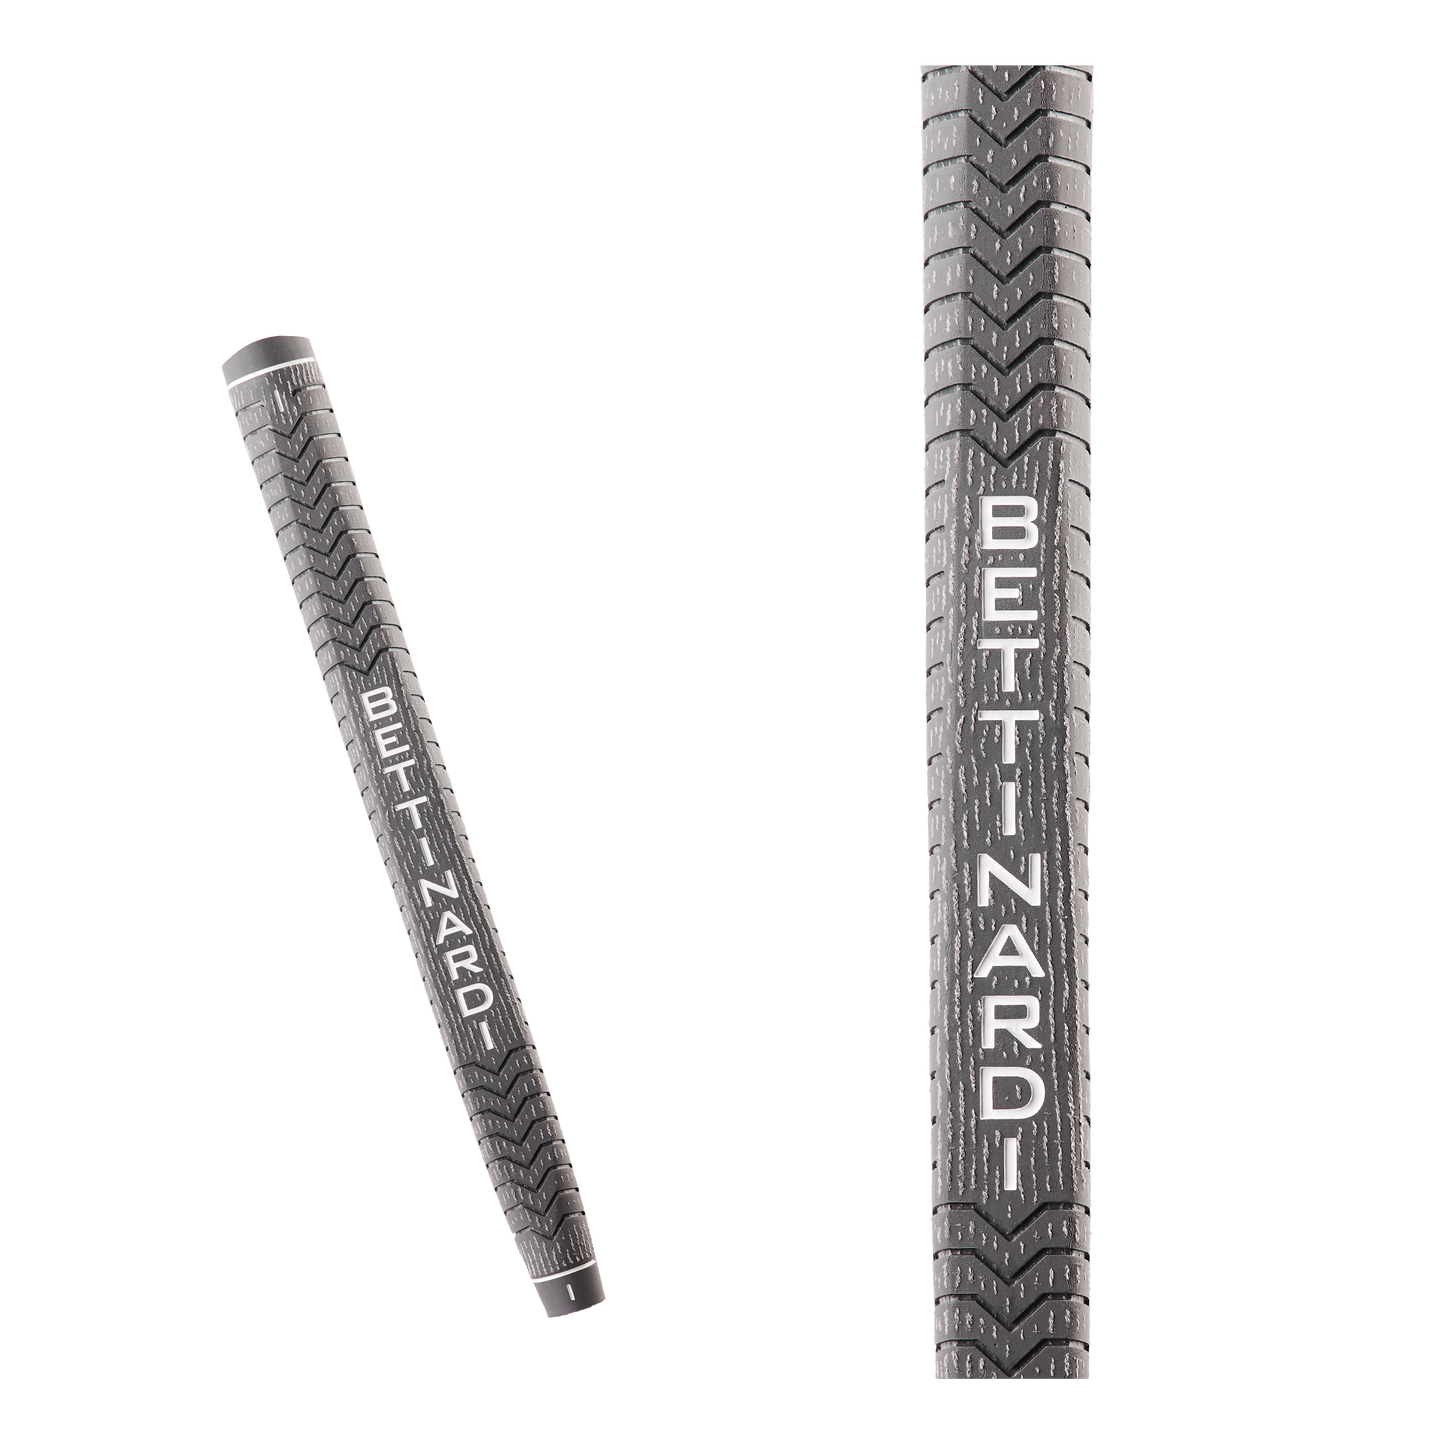 Grey Bettinardi Deep Etched Putter Grip (Standard)